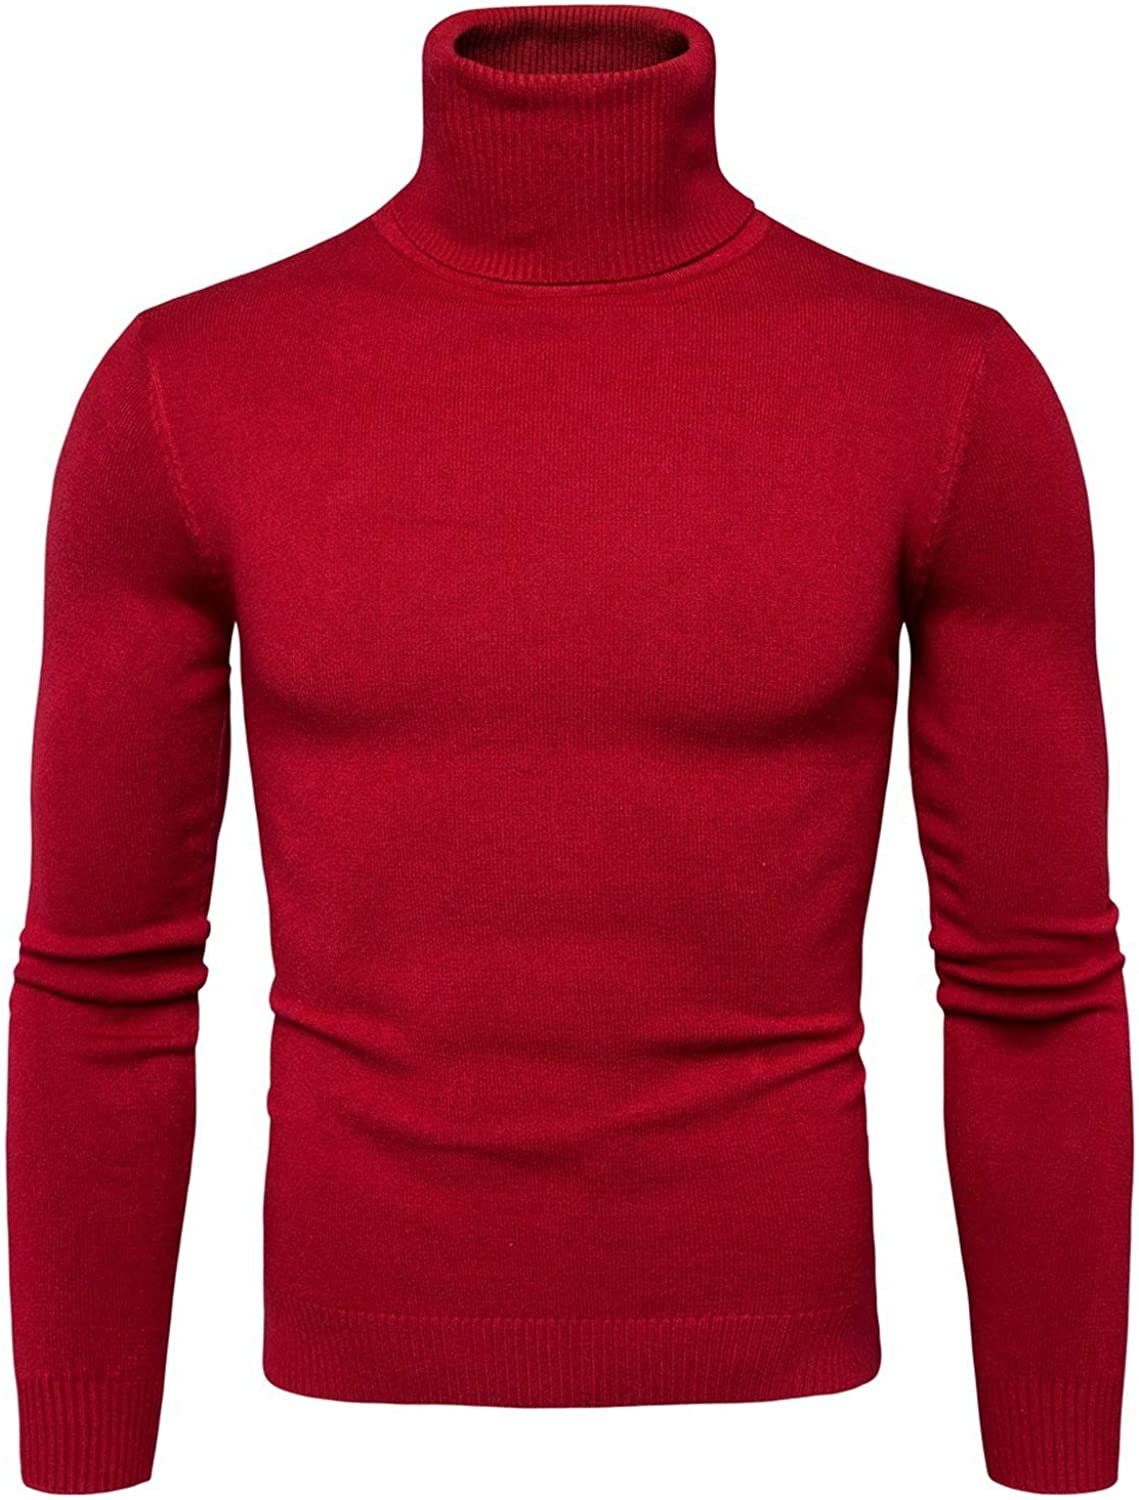 Zsweet Winter Warm Turtleneck Sweater Men Solid Knitted Mens Sweaters Casual Male Double Collar Slim Fit Pullover